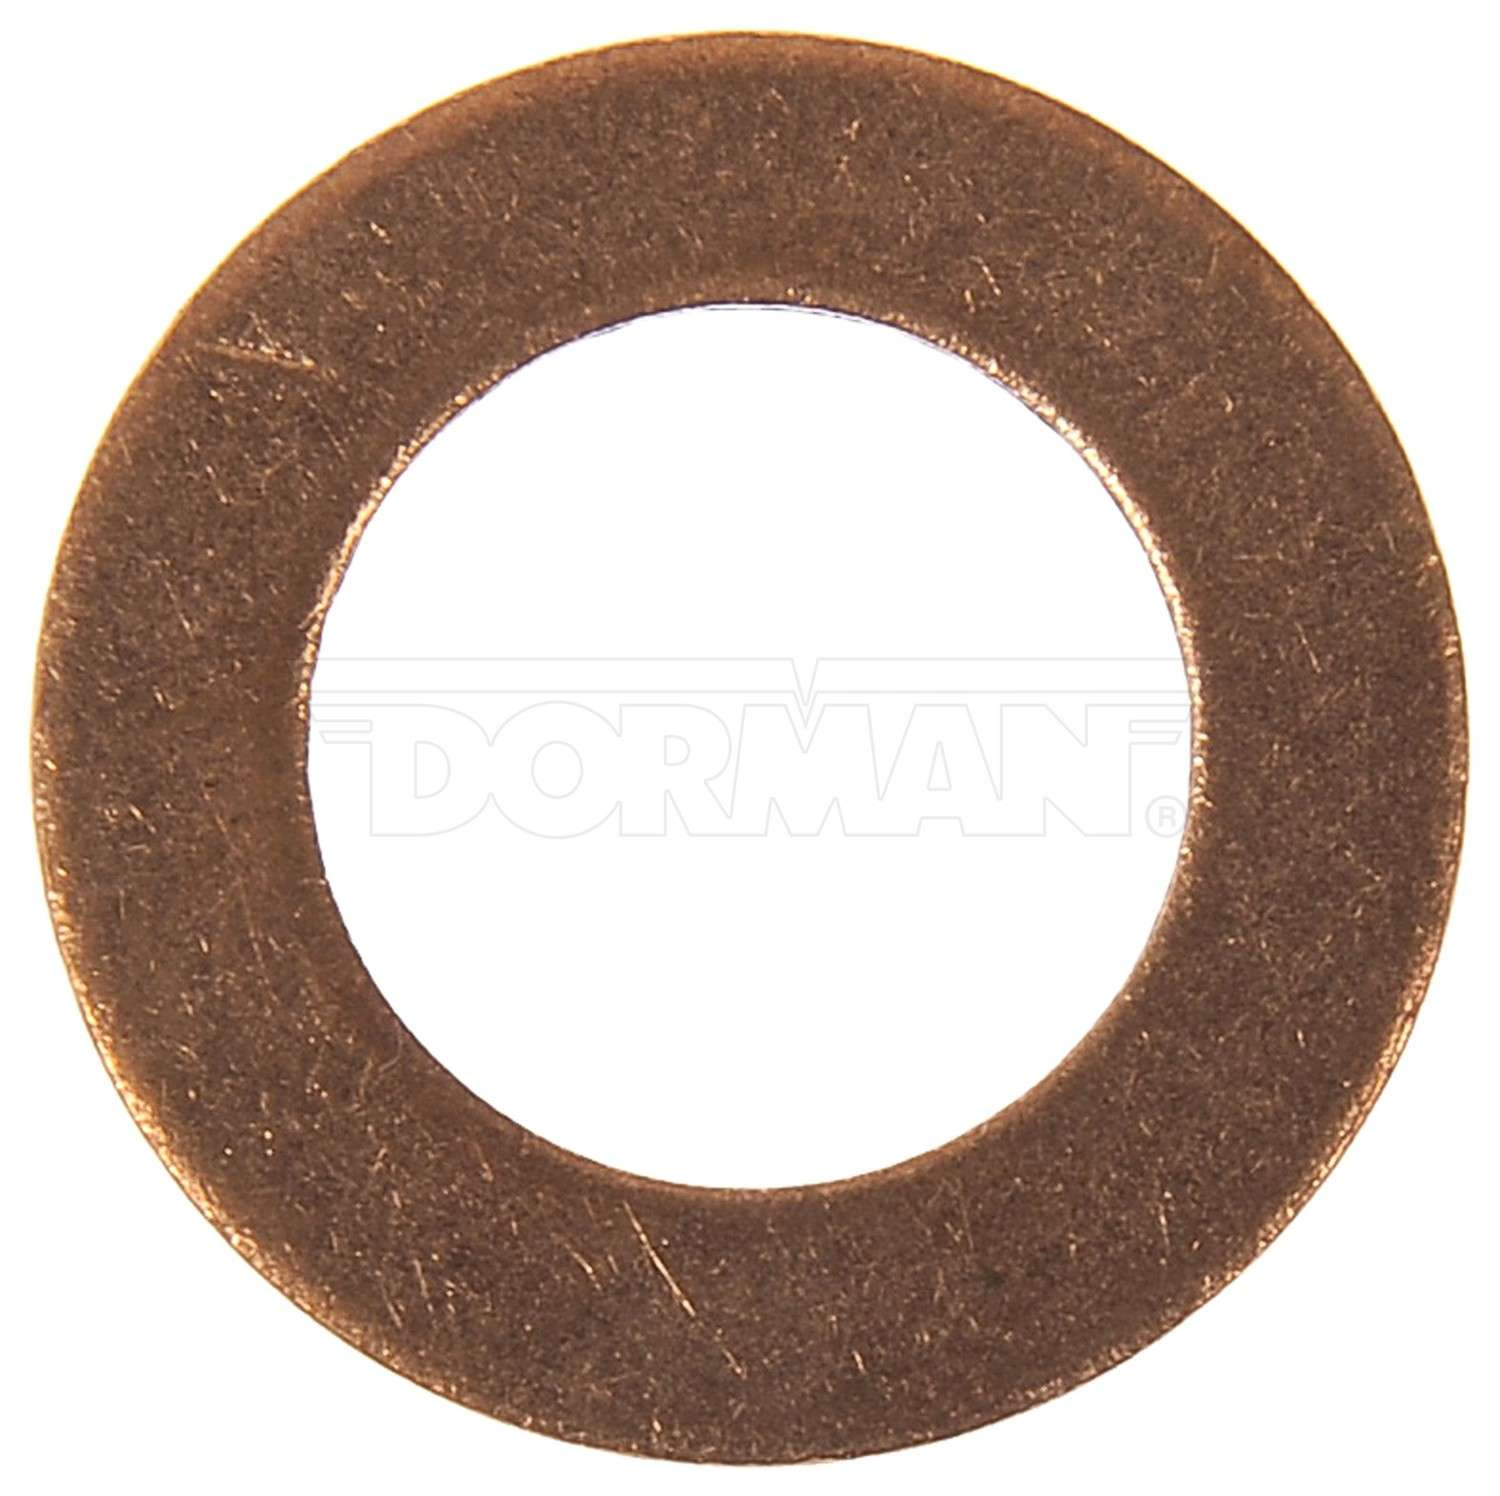 DORMAN - AUTOGRADE - Brake Hydraulic Hose To Caliper Bolt Washer - DOC 484-185.1